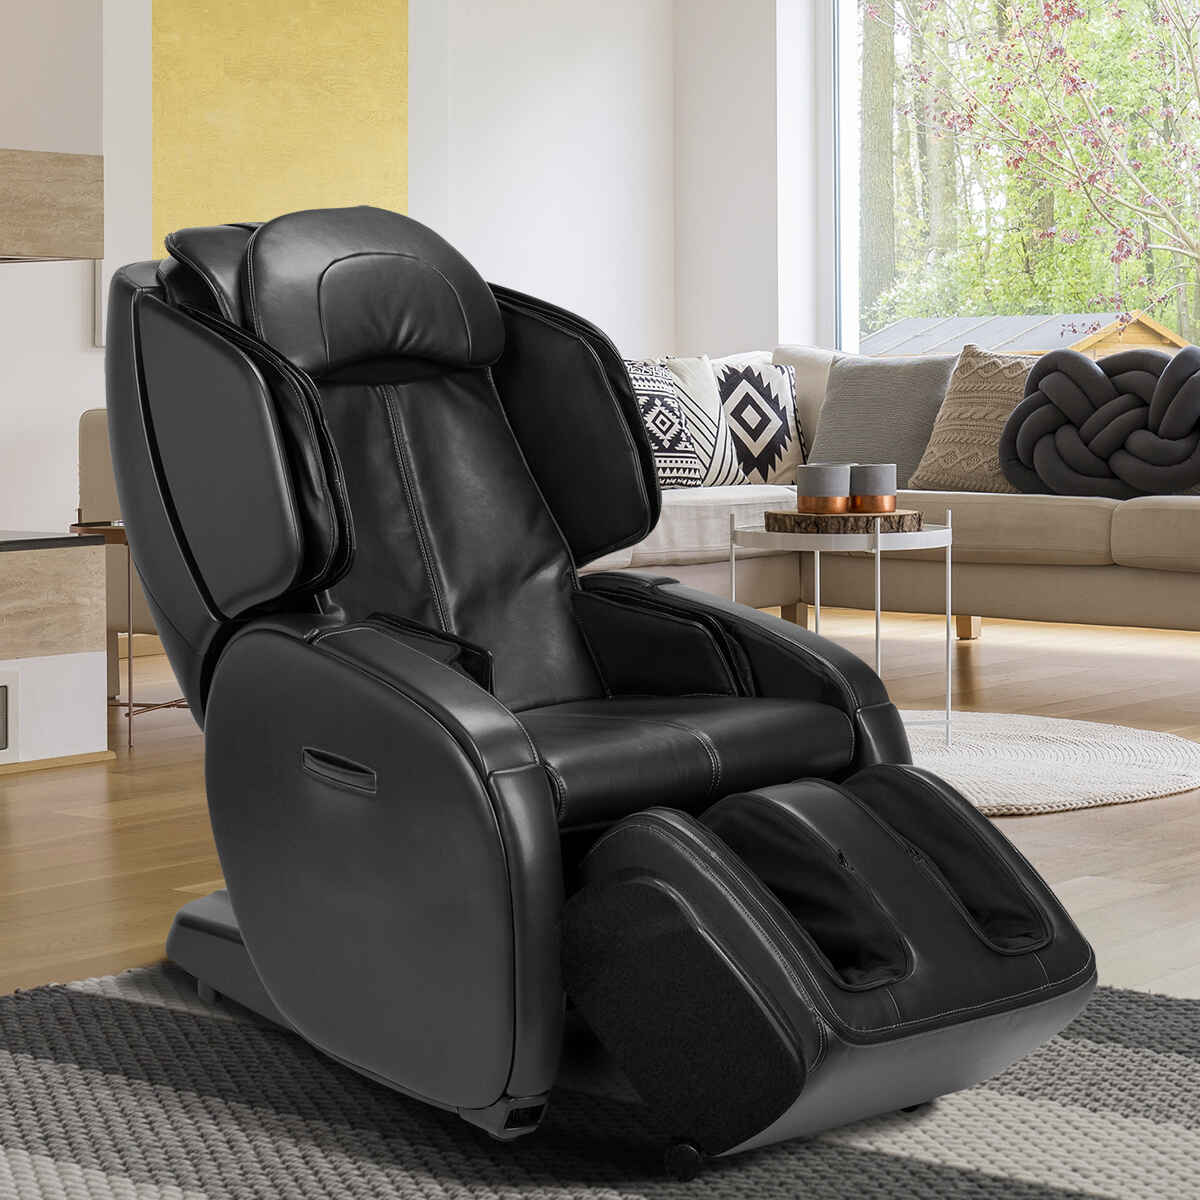 AcuTouch 6.1 massage chair